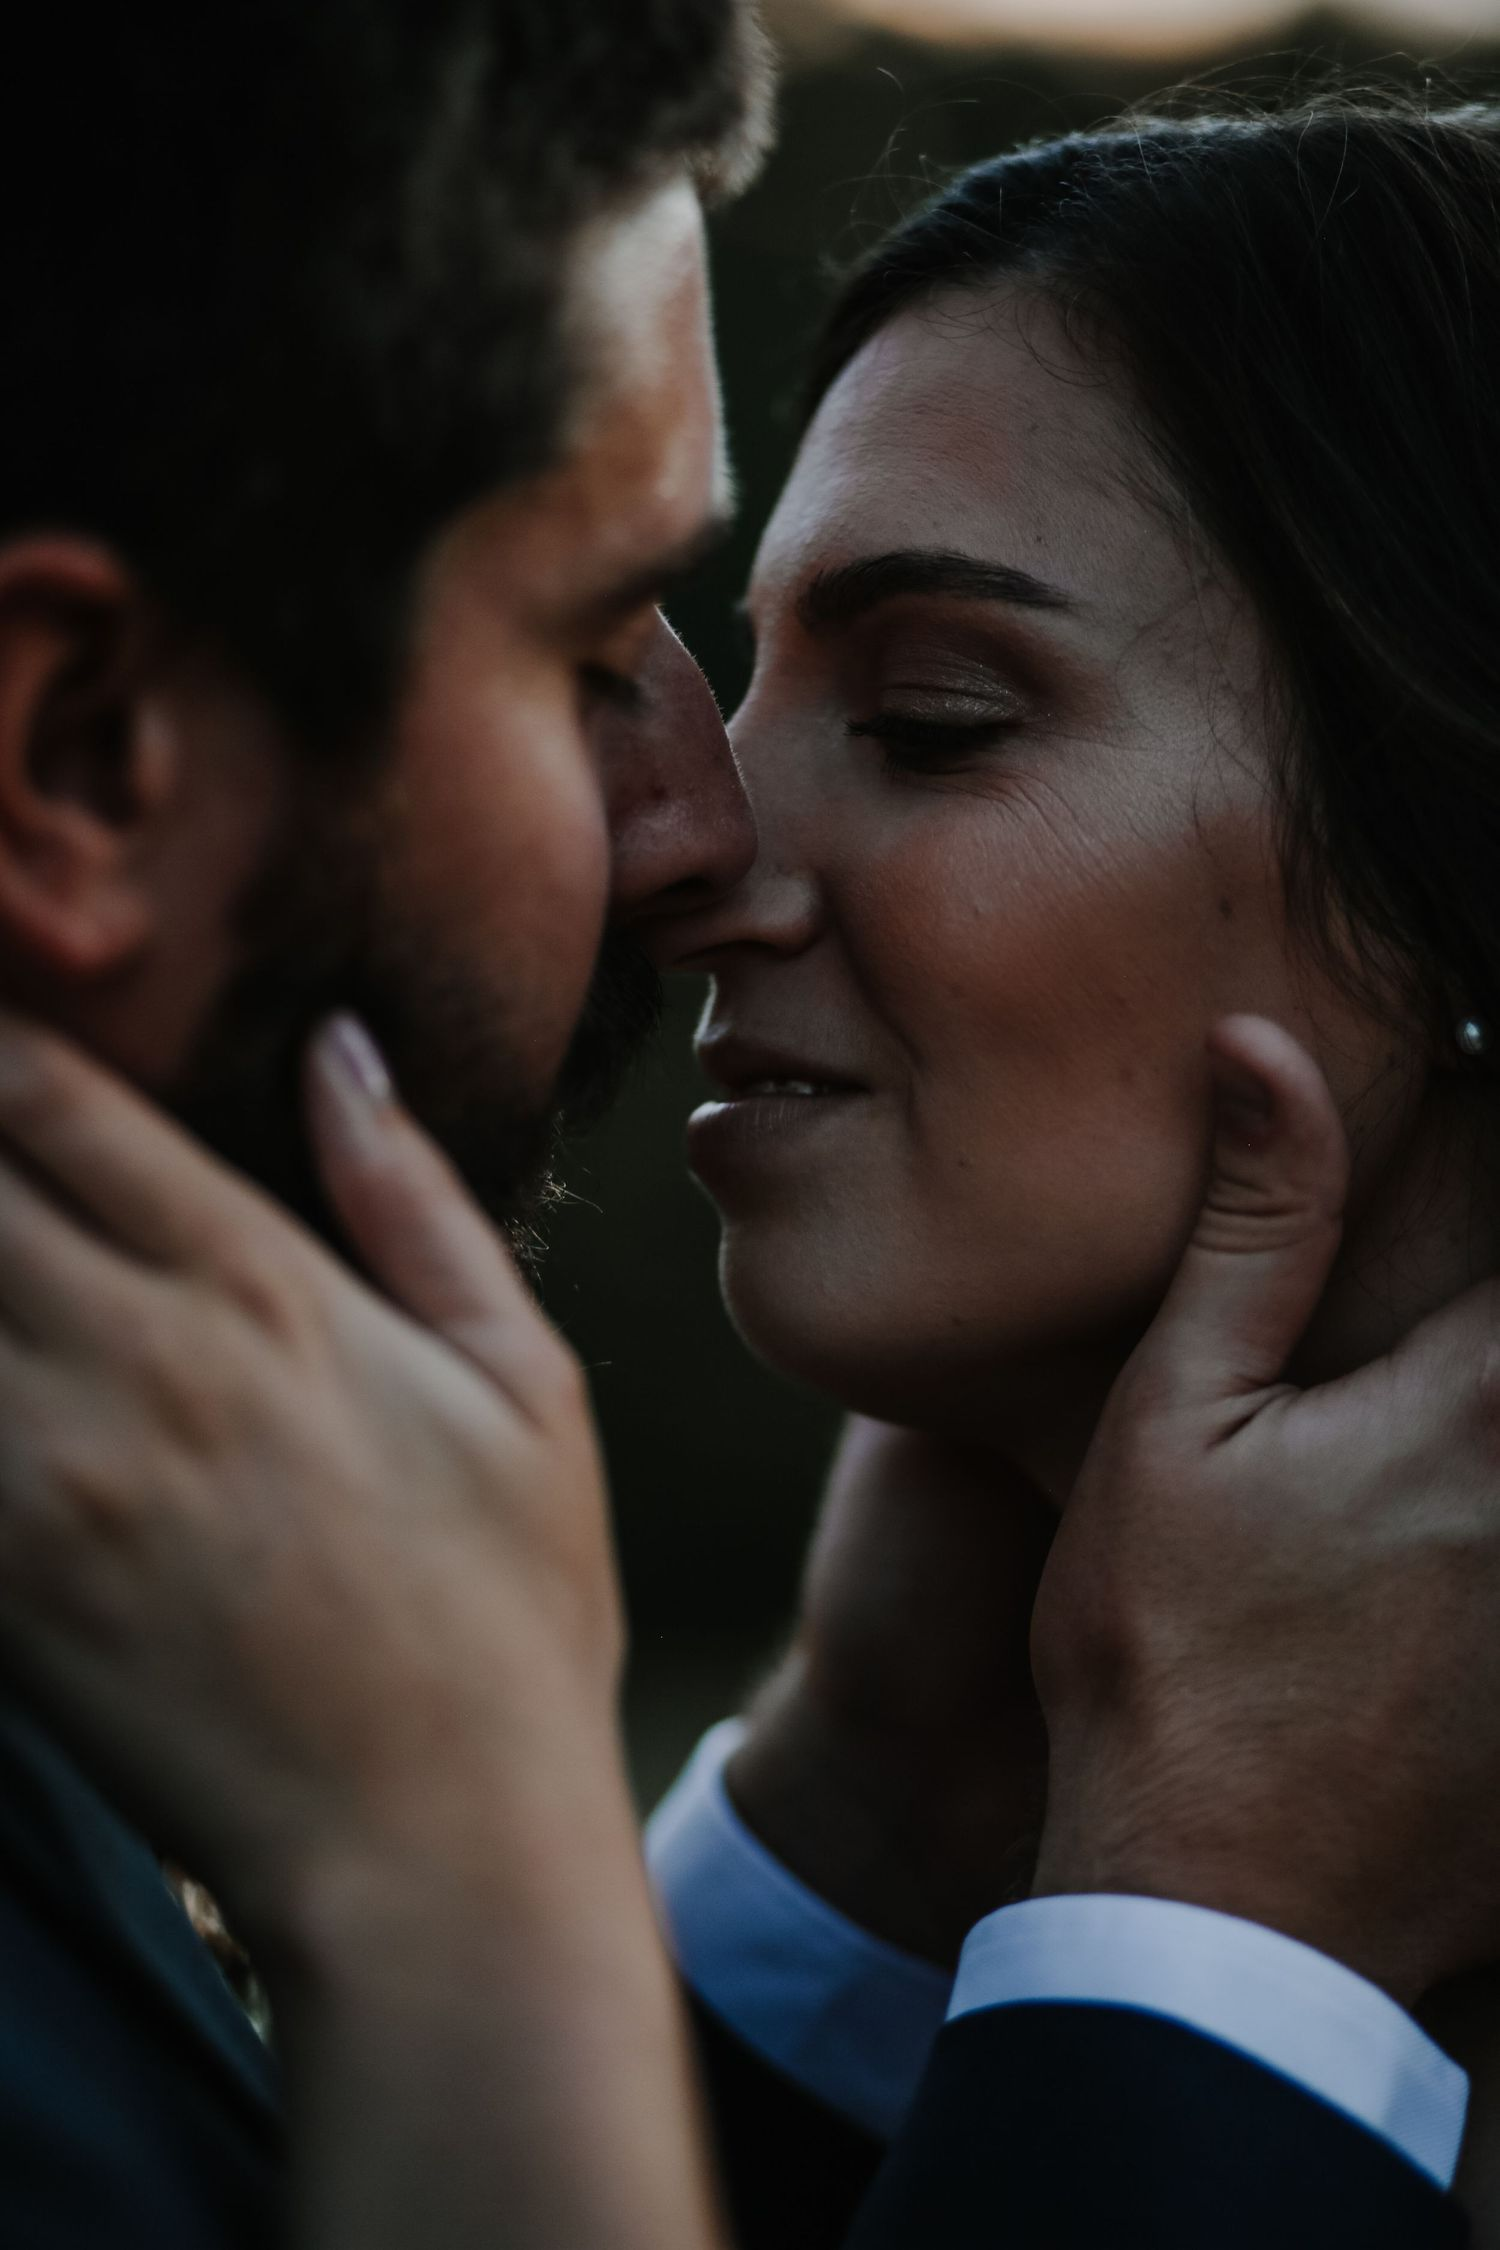 Moody wedding photography Lexington central KY Kentucky unique engagement session couples